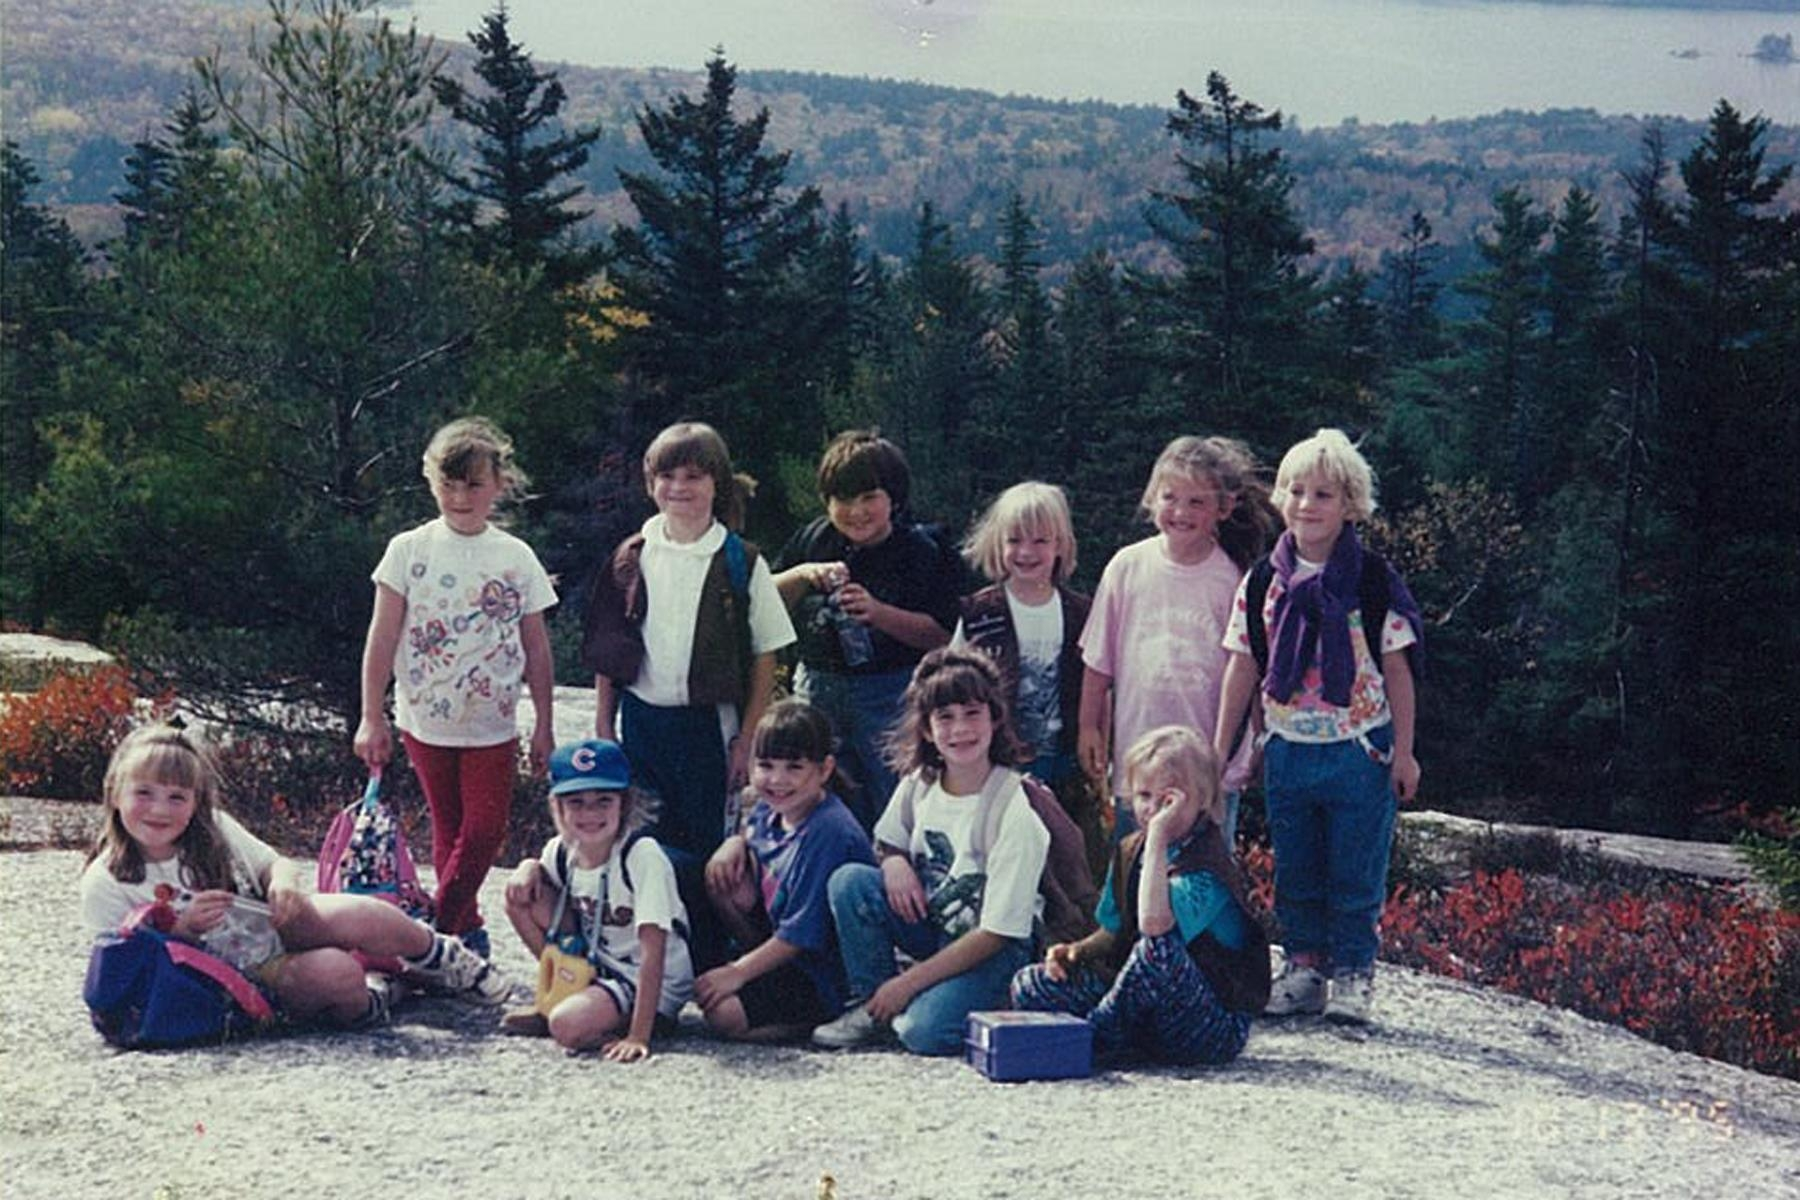 a photo of Girl Scouts doing a hike up a mountain in 1995